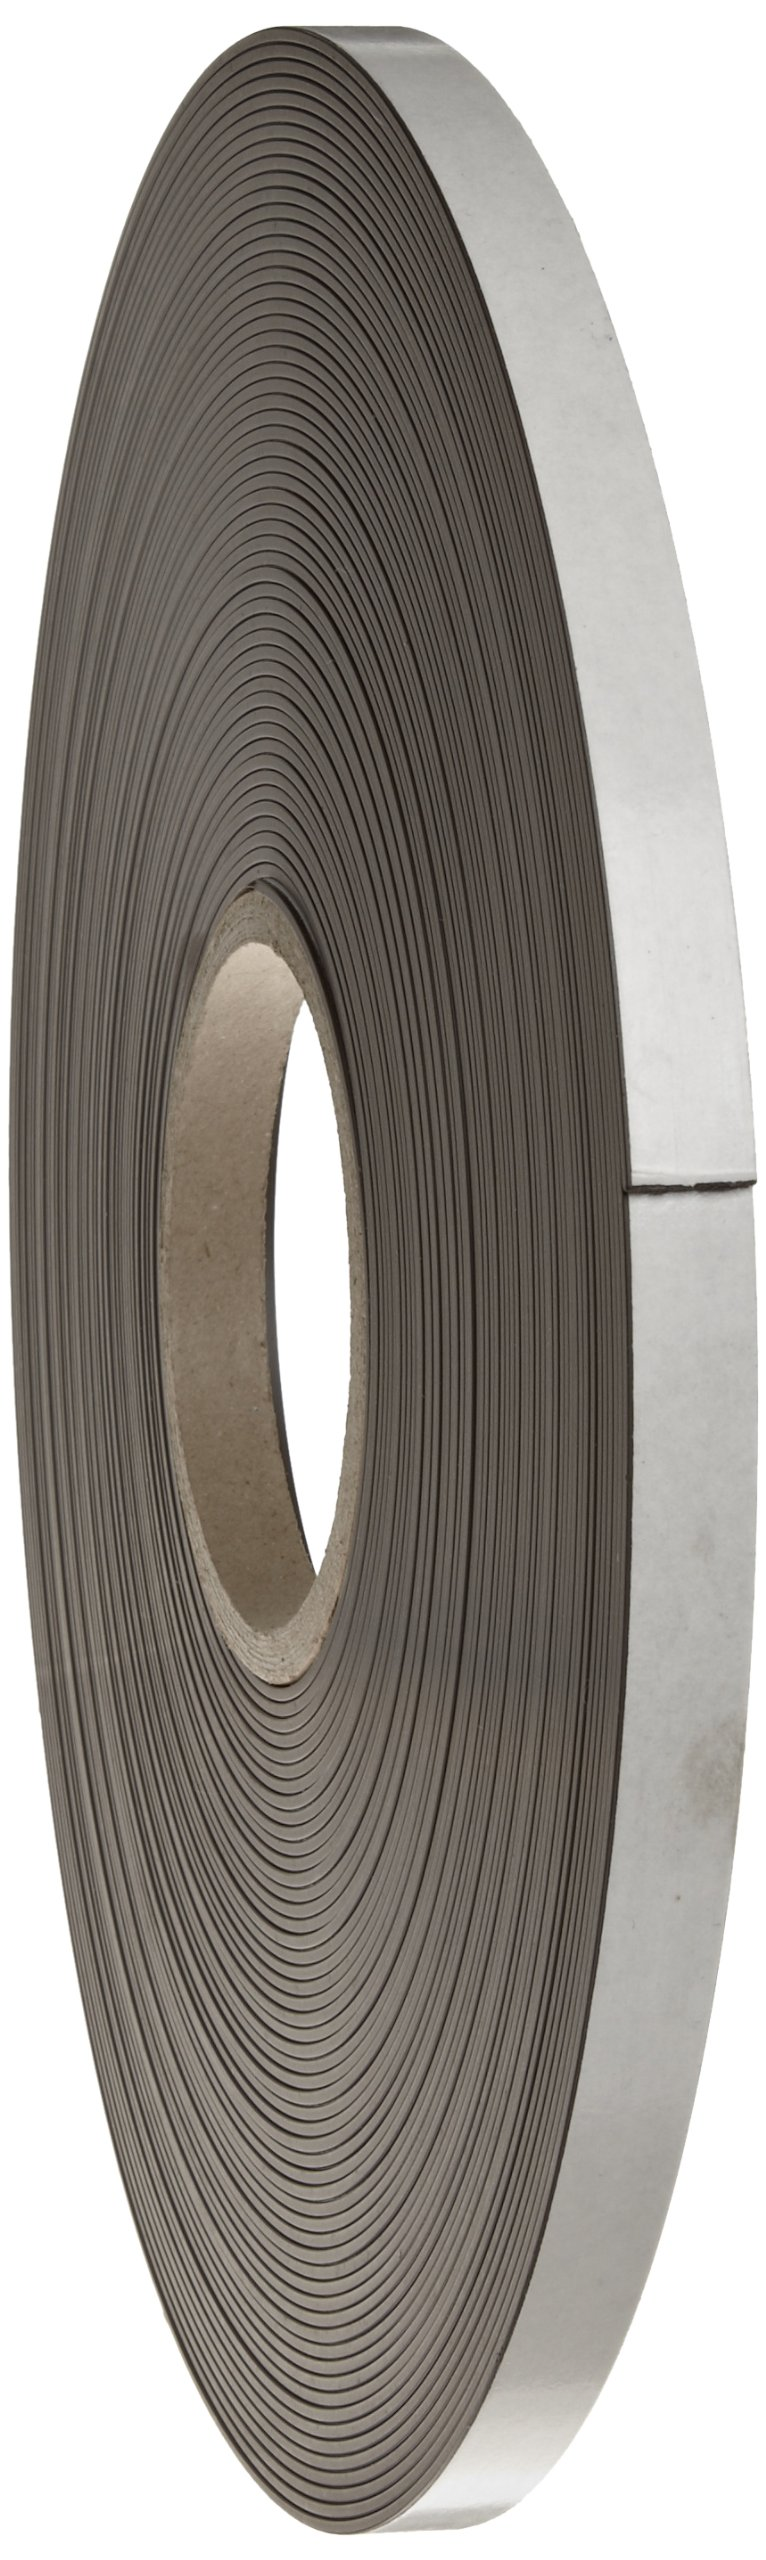 High Energy Flexible Magnet Strip, 1/16'' Thick, 1/2'' Wide, 100' Length (1 Roll)